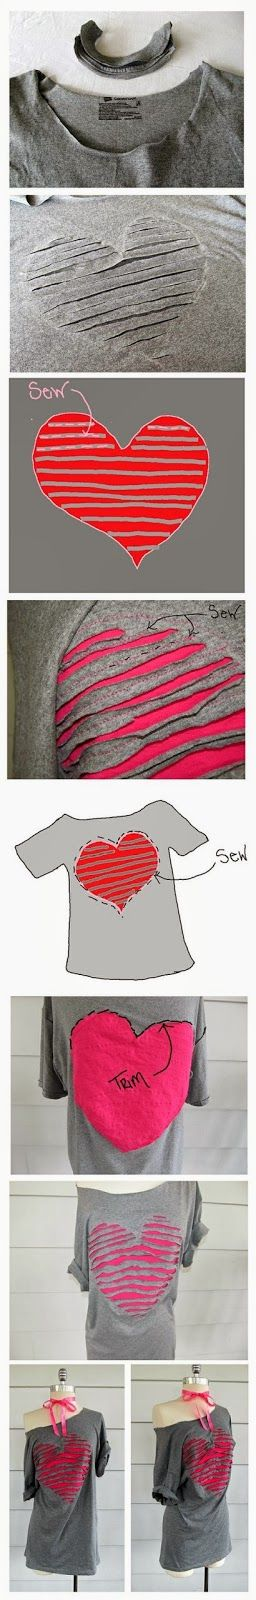 My DIY Projects: Recycling Old t-shirt remake